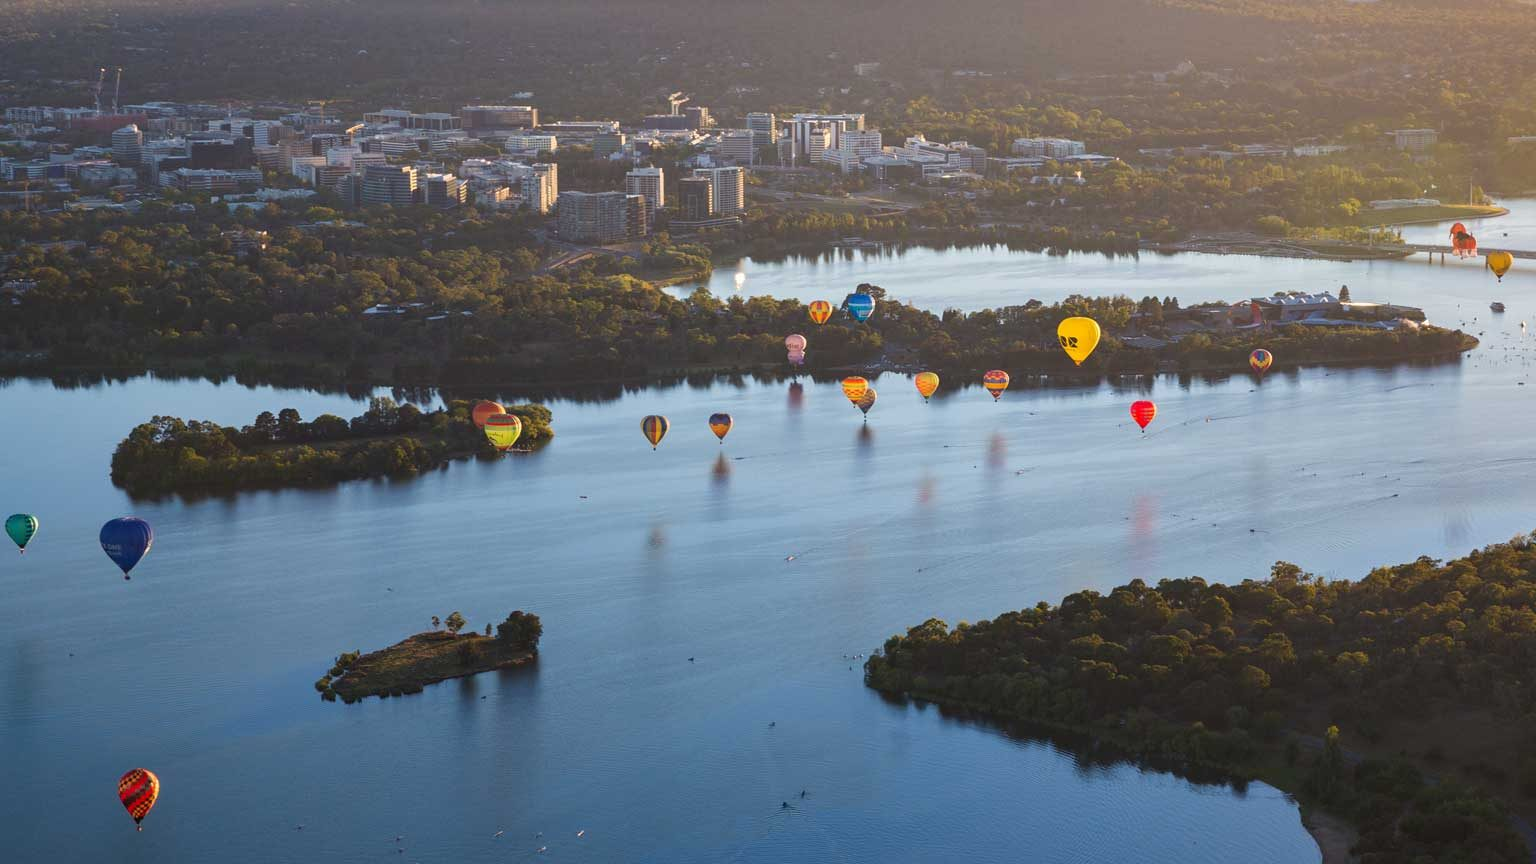 Aerial view from a Hot Air Balloon at sunrise of Lake Burley Griffin and Black Mountain Tower during the Canberra Balloon Spectacular with occurs in March every year in the Australian Capital Territory in Australia